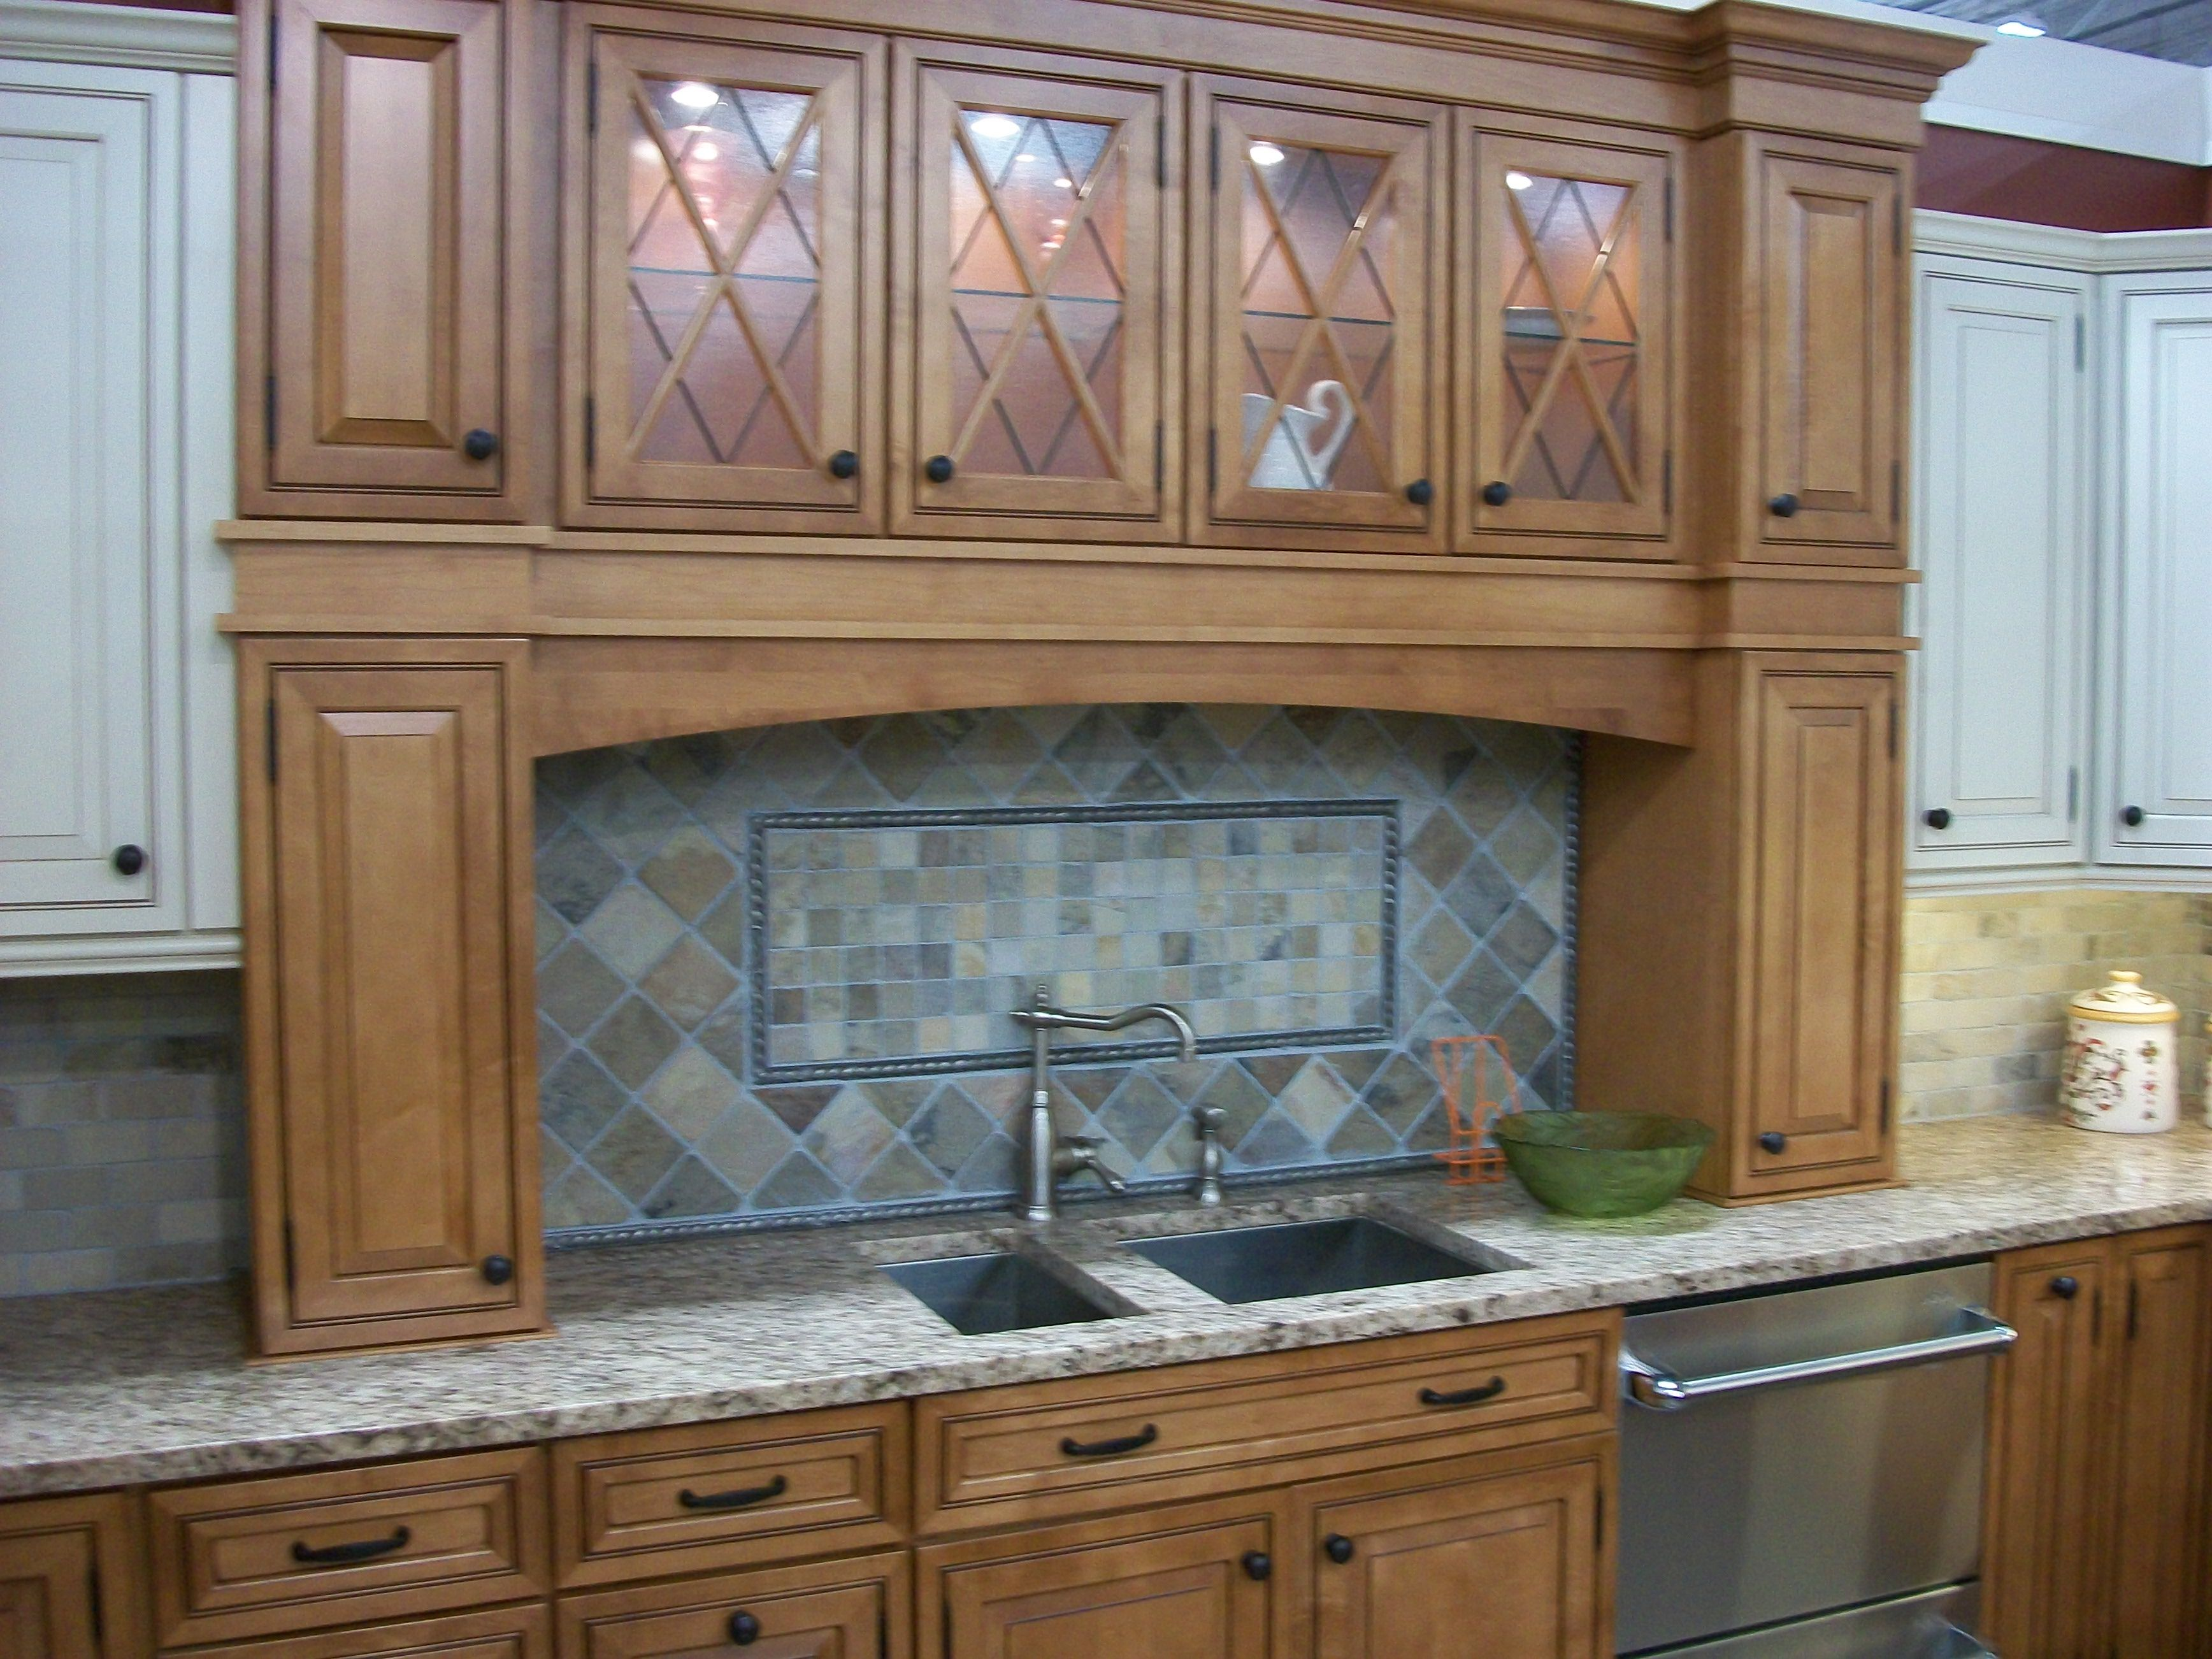 Refacing Your Kitchen Cabinets Can Completely Change The Look And Attractions Of Your Ki Minimalist Kitchen Design Kitchen Cabinets Home Depot Kitchen Cabinets